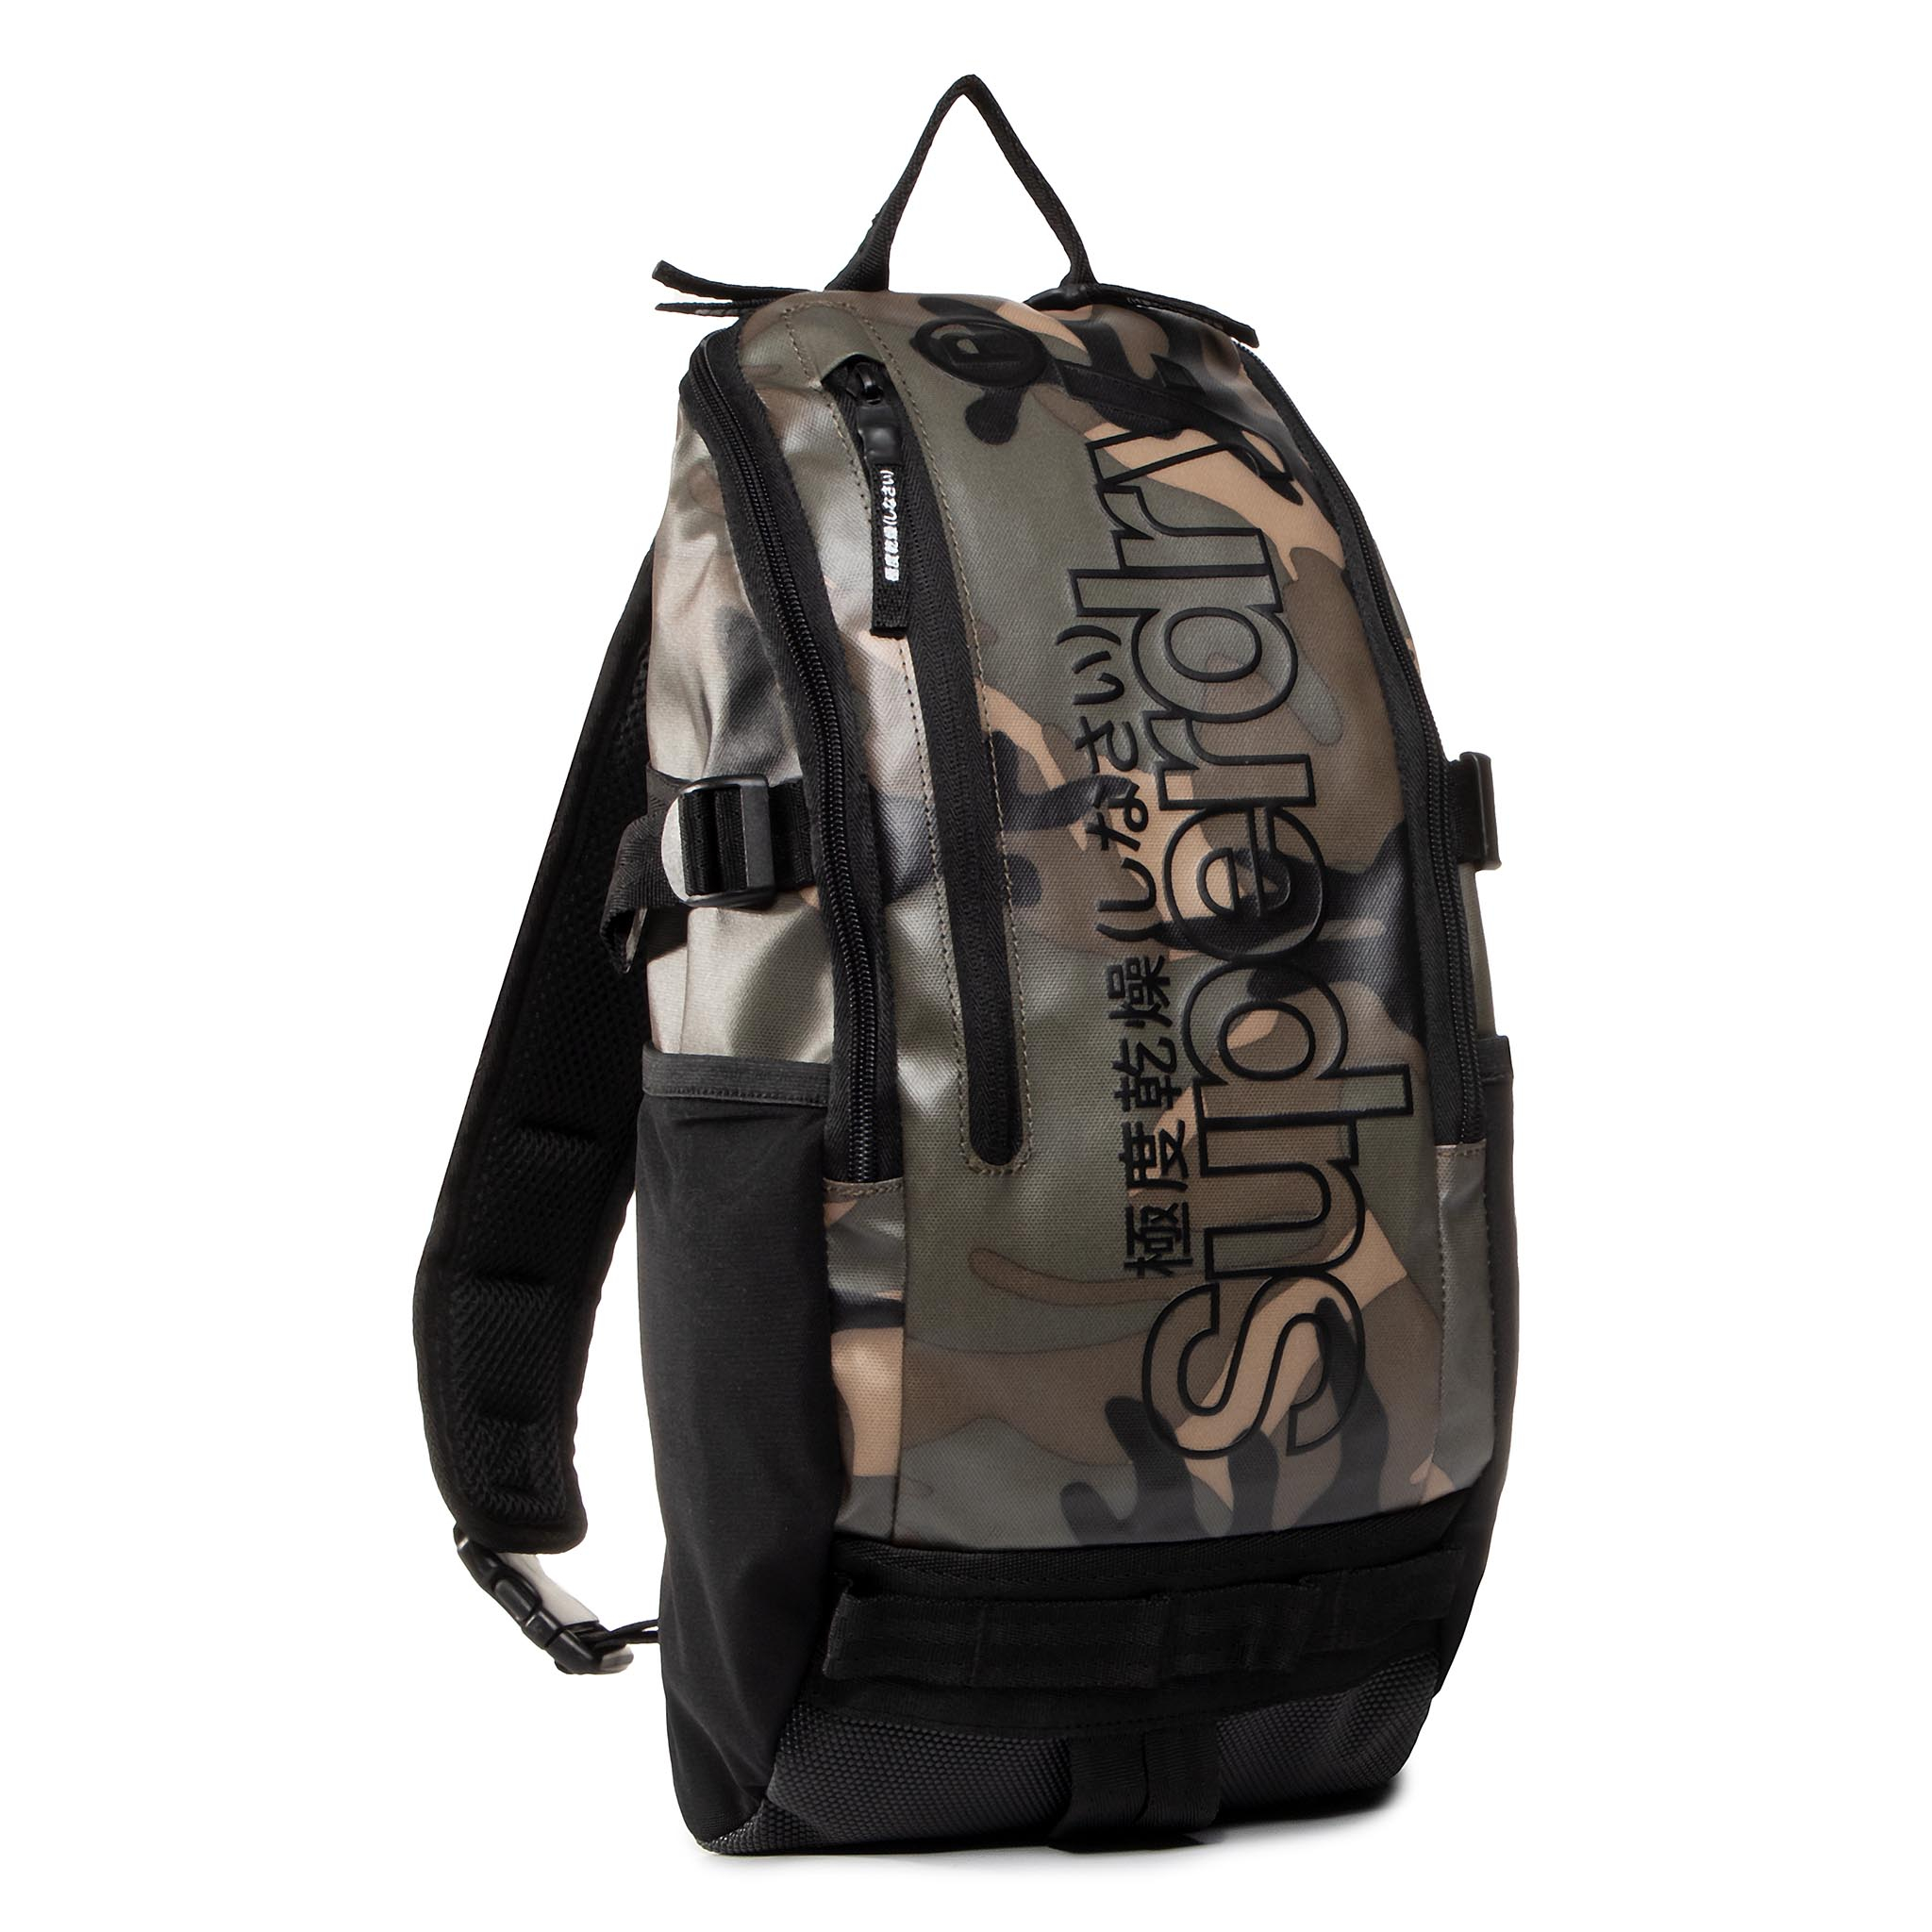 Geantă Superdry - Hardy Sling Bag M9110008a Green Camo imagine